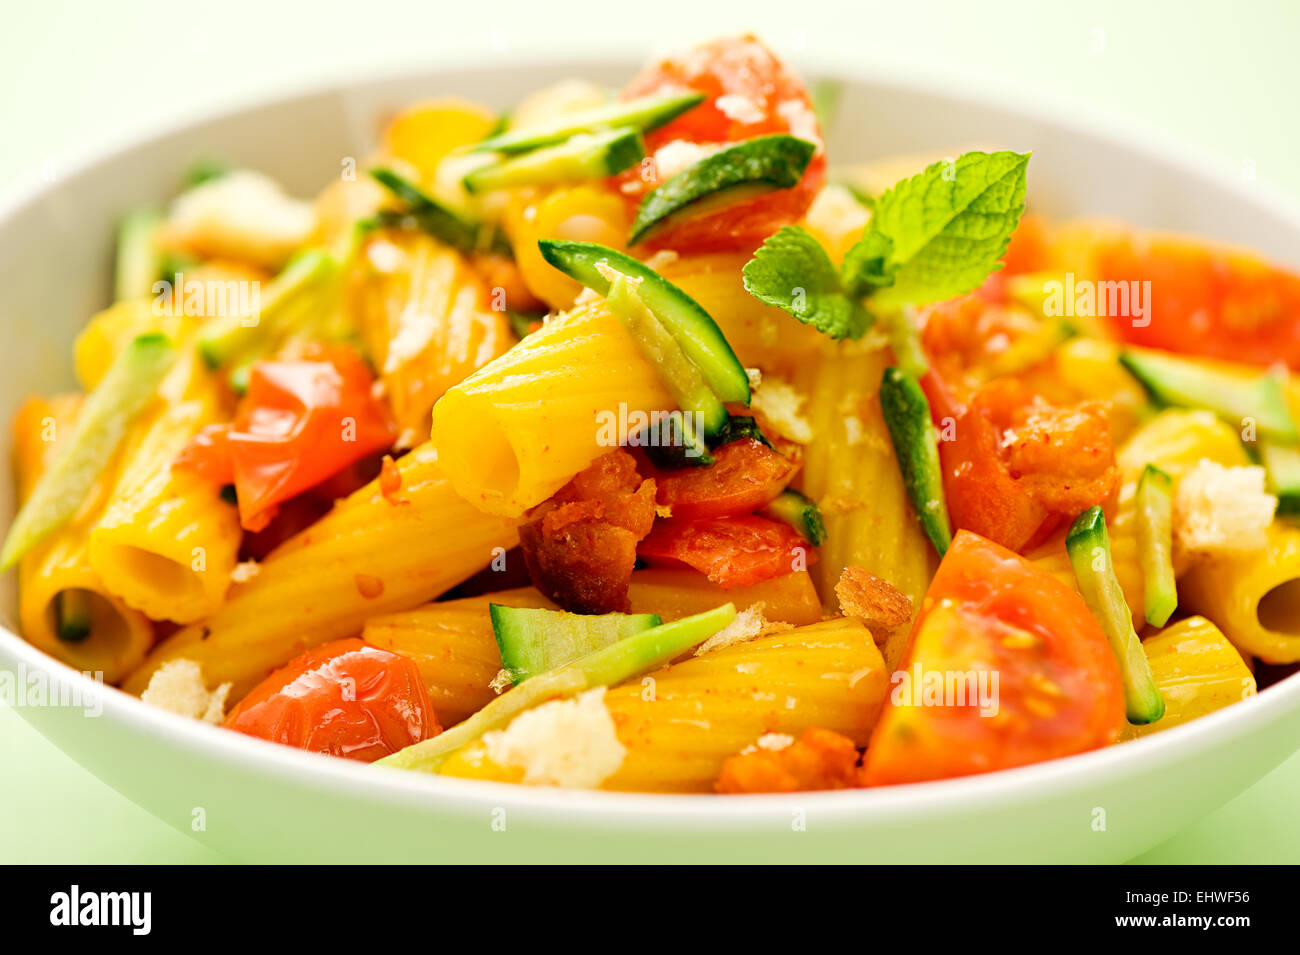 pasta, tortiglioni, italian, tomato, vegetables, basil, carbohydrate, cheese, durum, mediterranean, semolina, wheat, - Stock Image